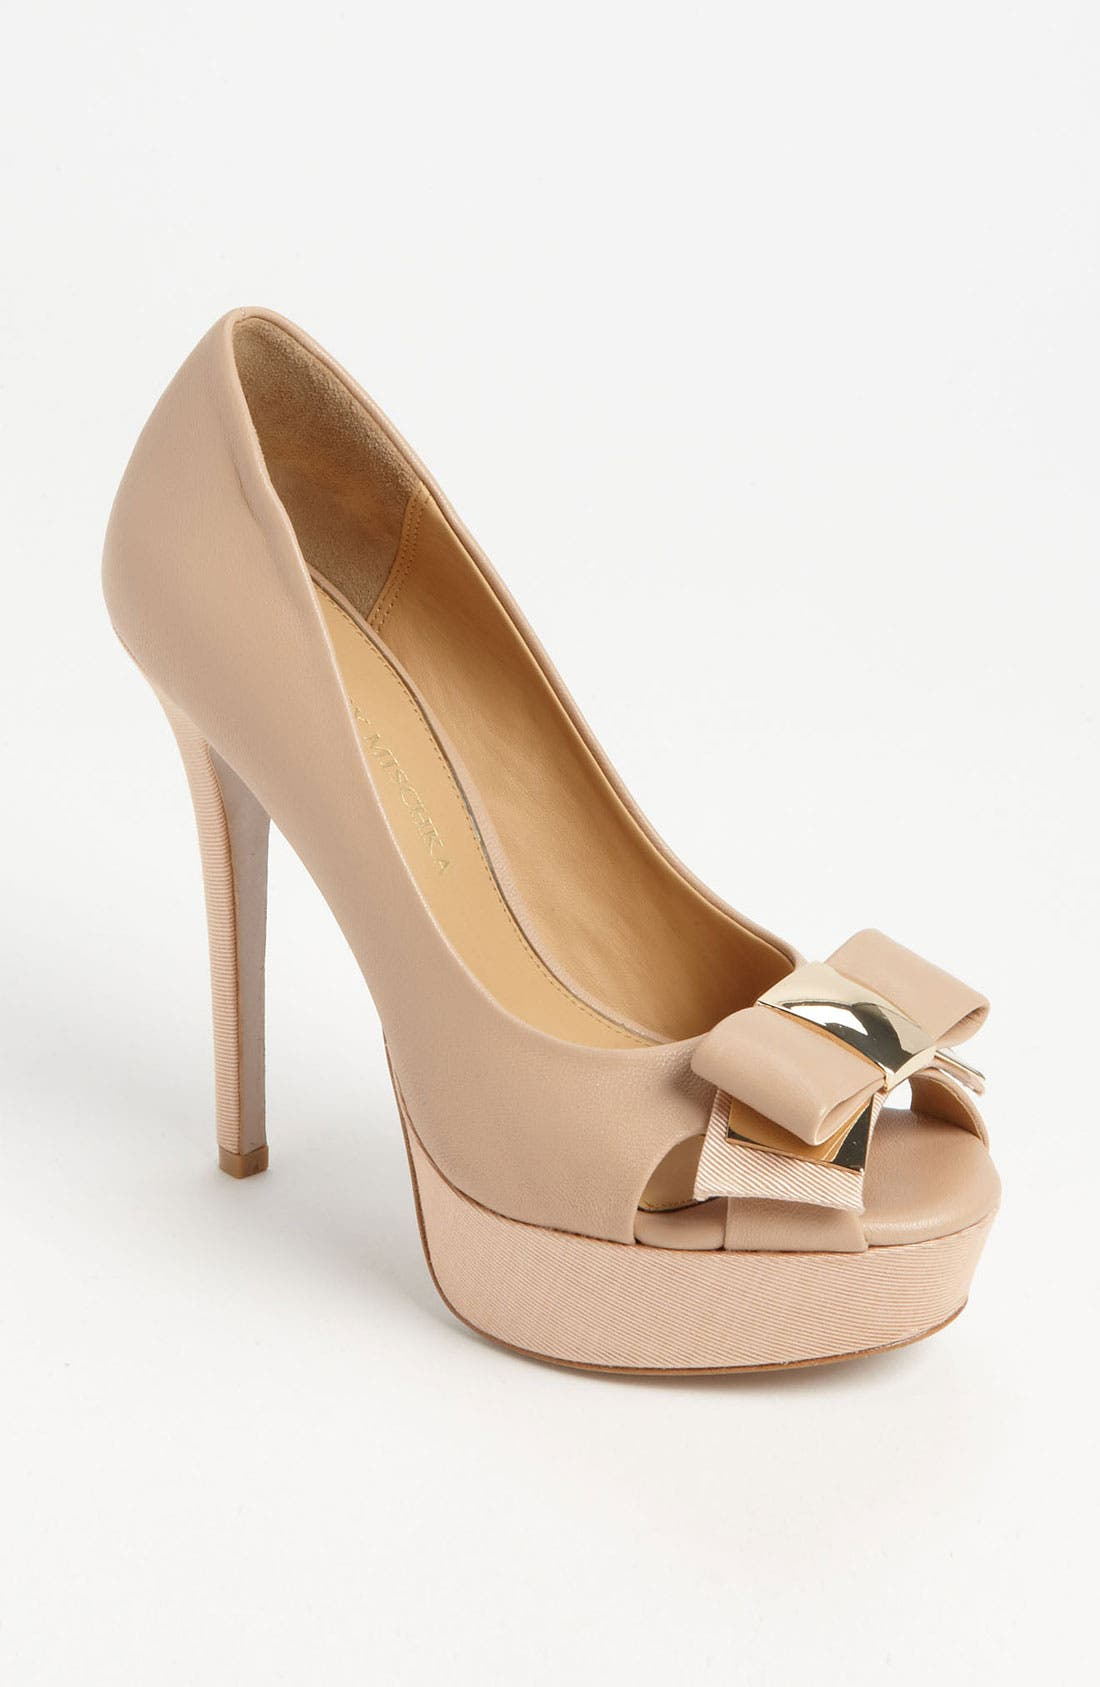 Alternate Image 1 Selected - Badgley Mischka 'Conary' Pump